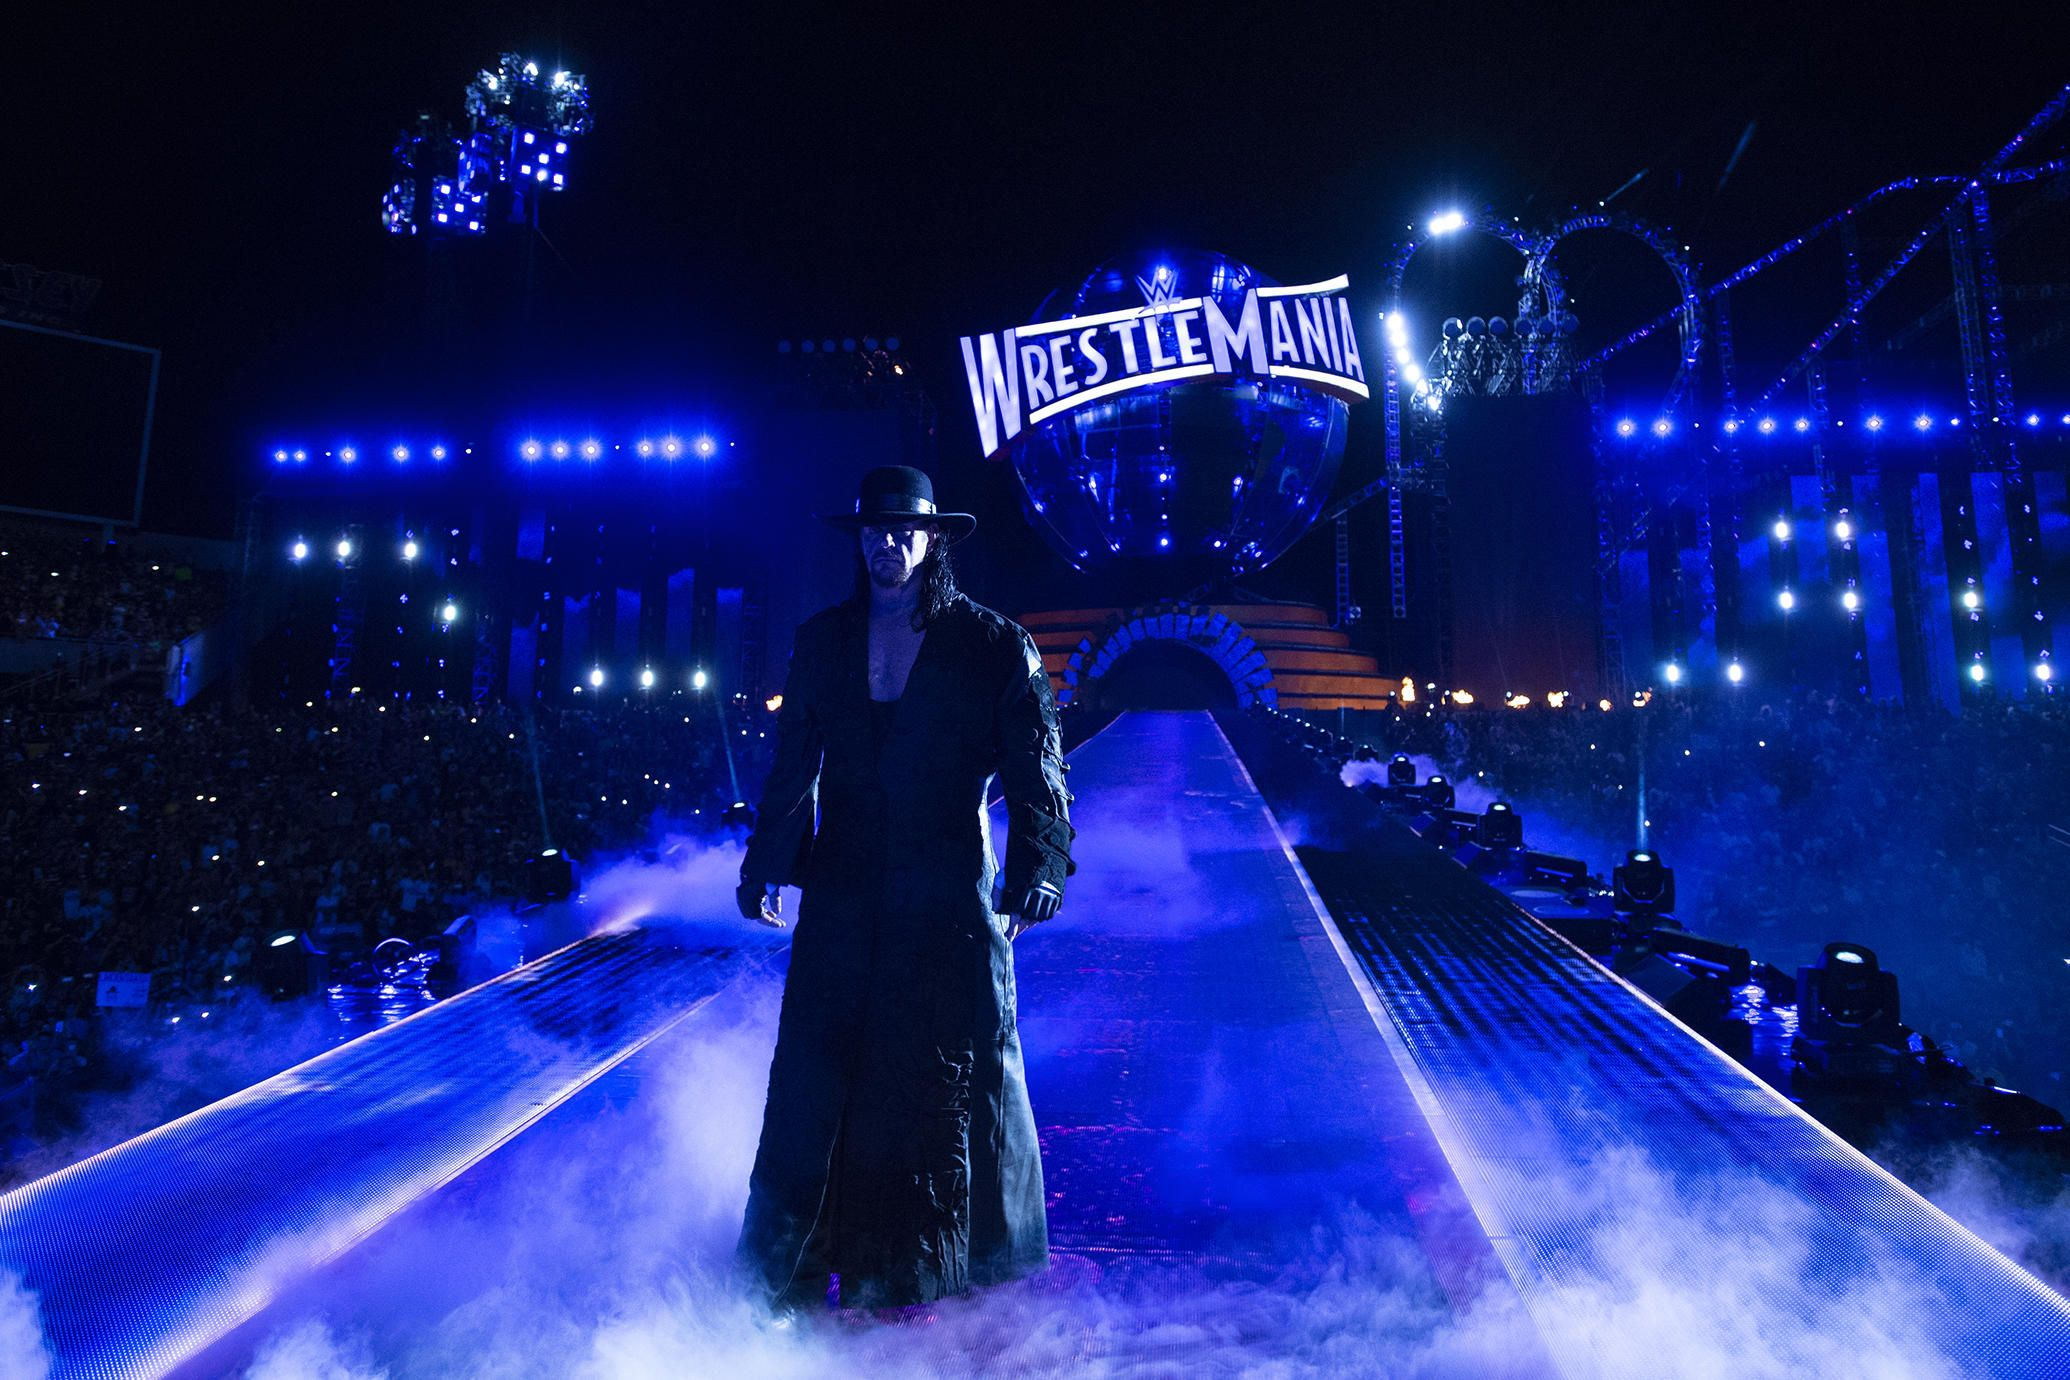 The Undertaker Rehearses His Iconic WrestleMania Entrance in This The Last Ride Sneak Peek via TV Guide Try a #NUmedia Trial. numediatvtrial.com #numediaglobal #numediatrial #tvshows #tvseries